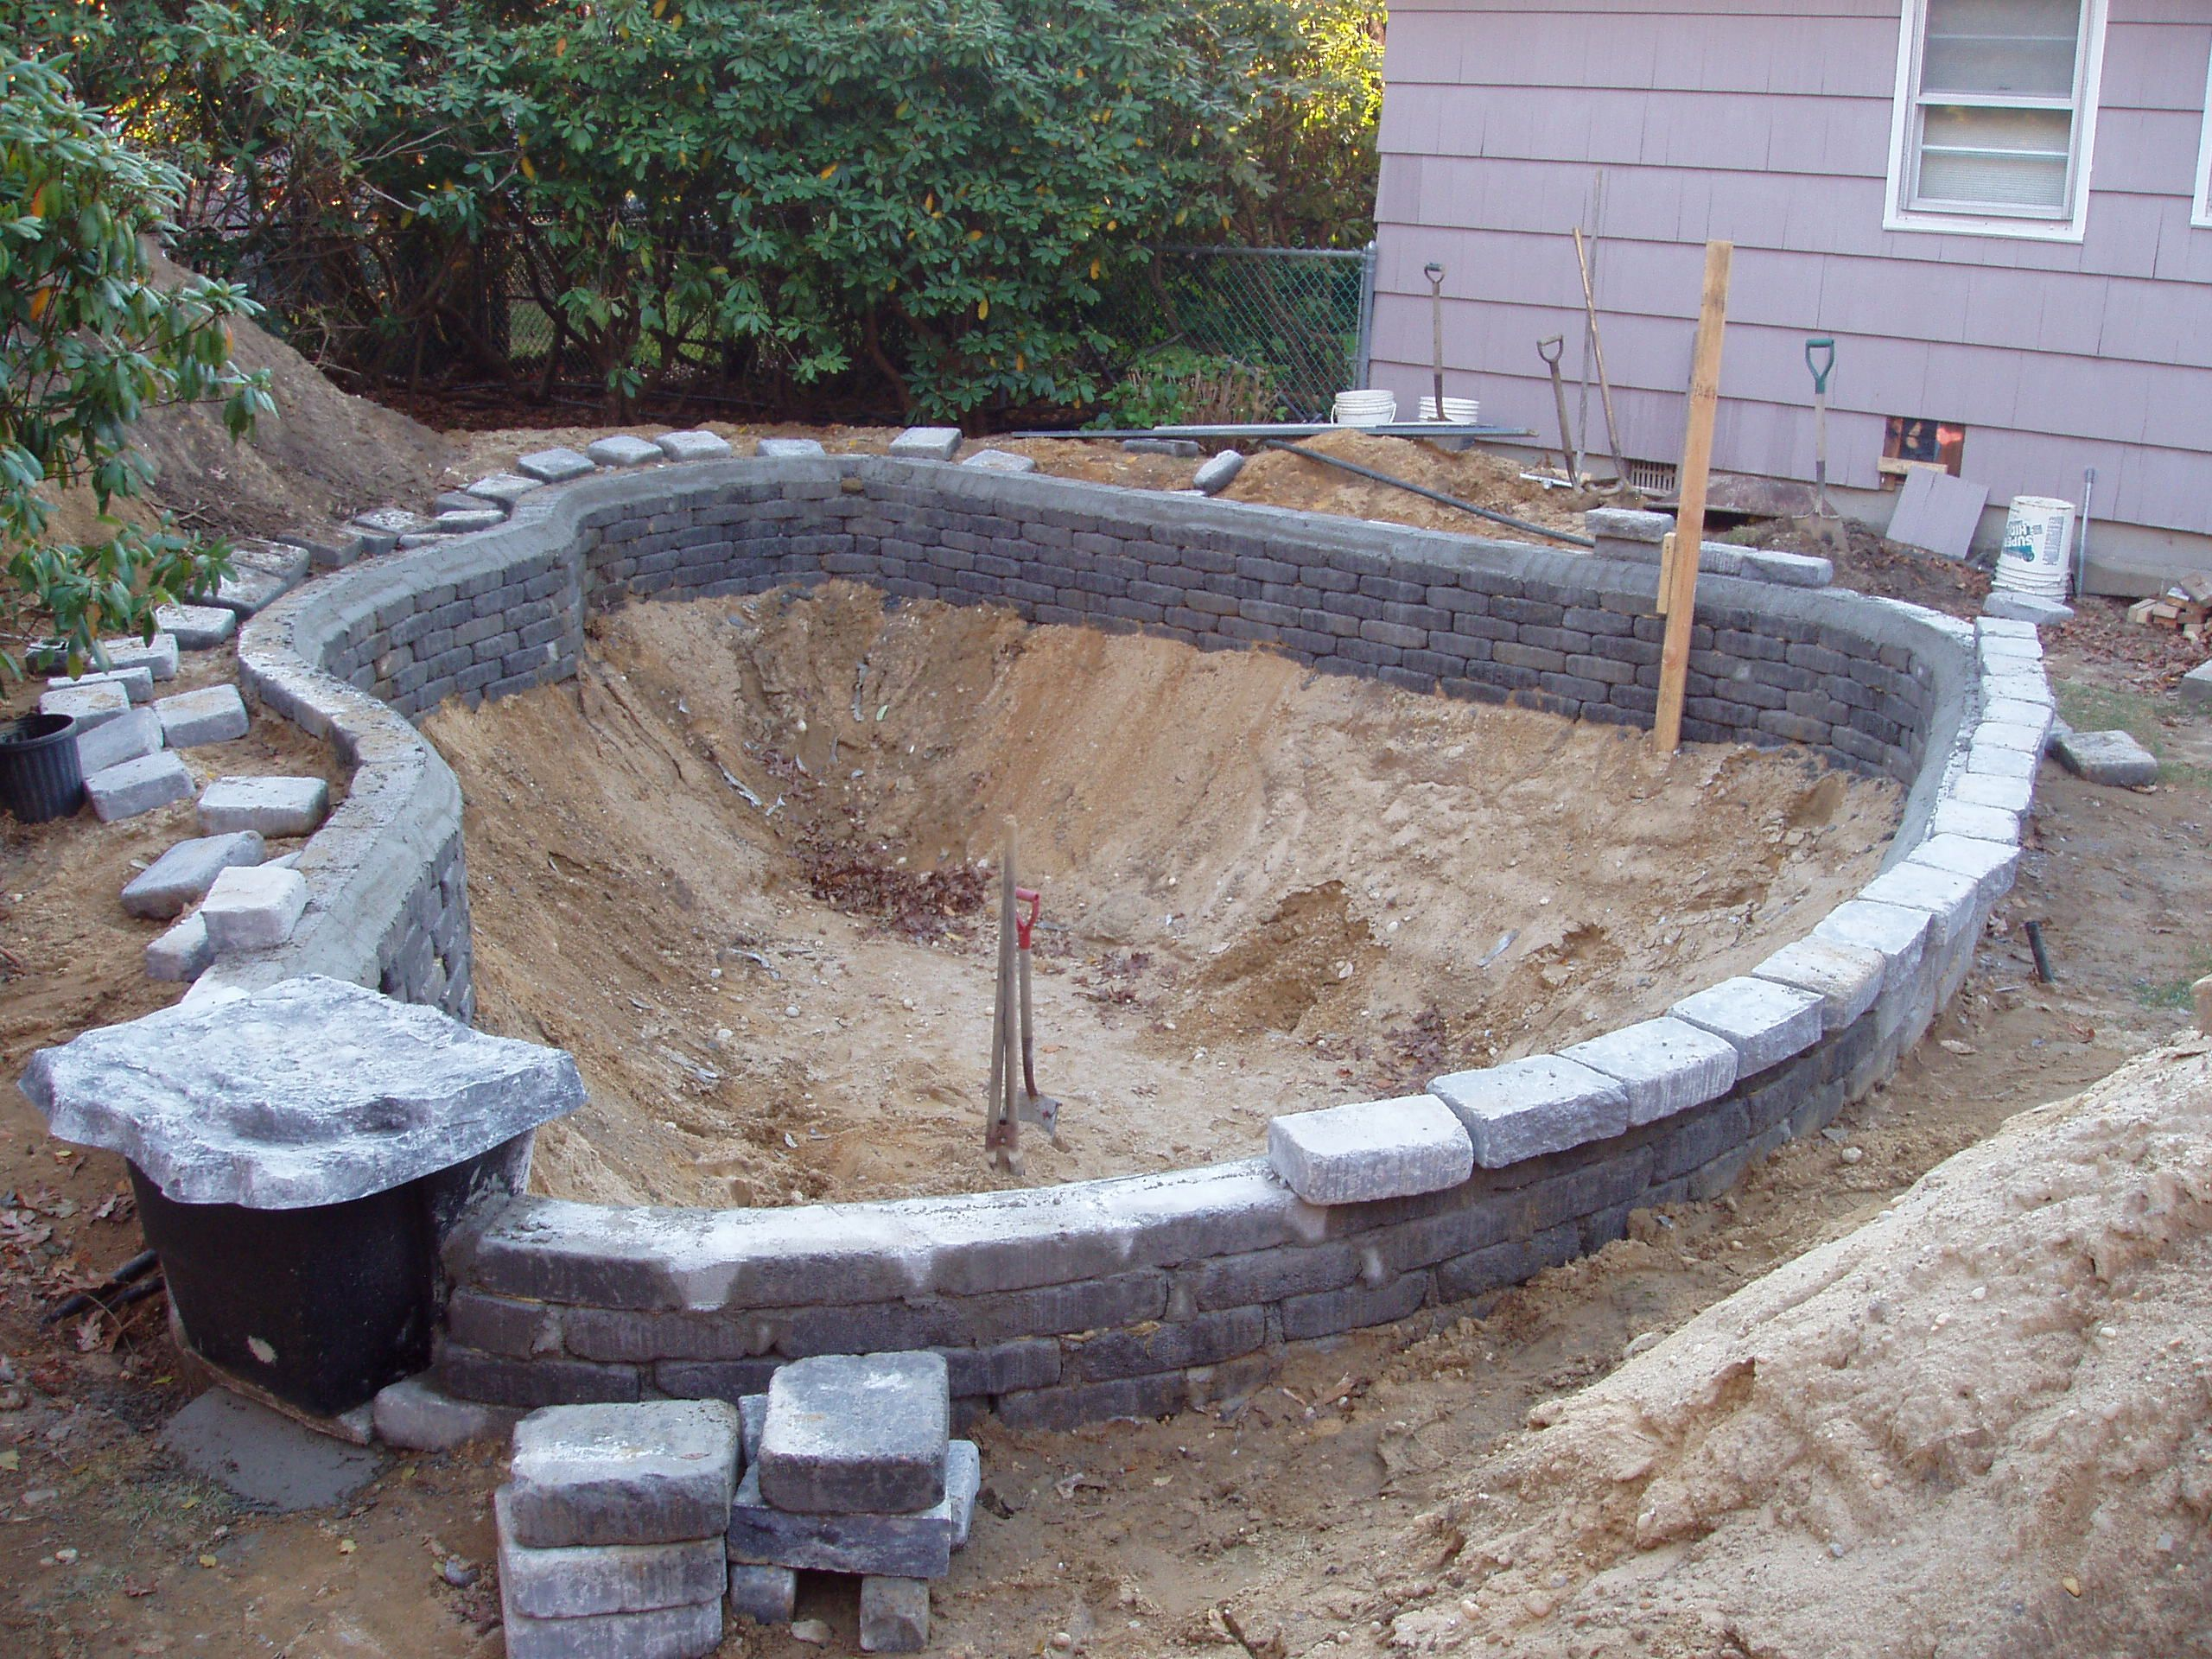 Pond design and construction google search aquaponics for Outside fish pond ideas